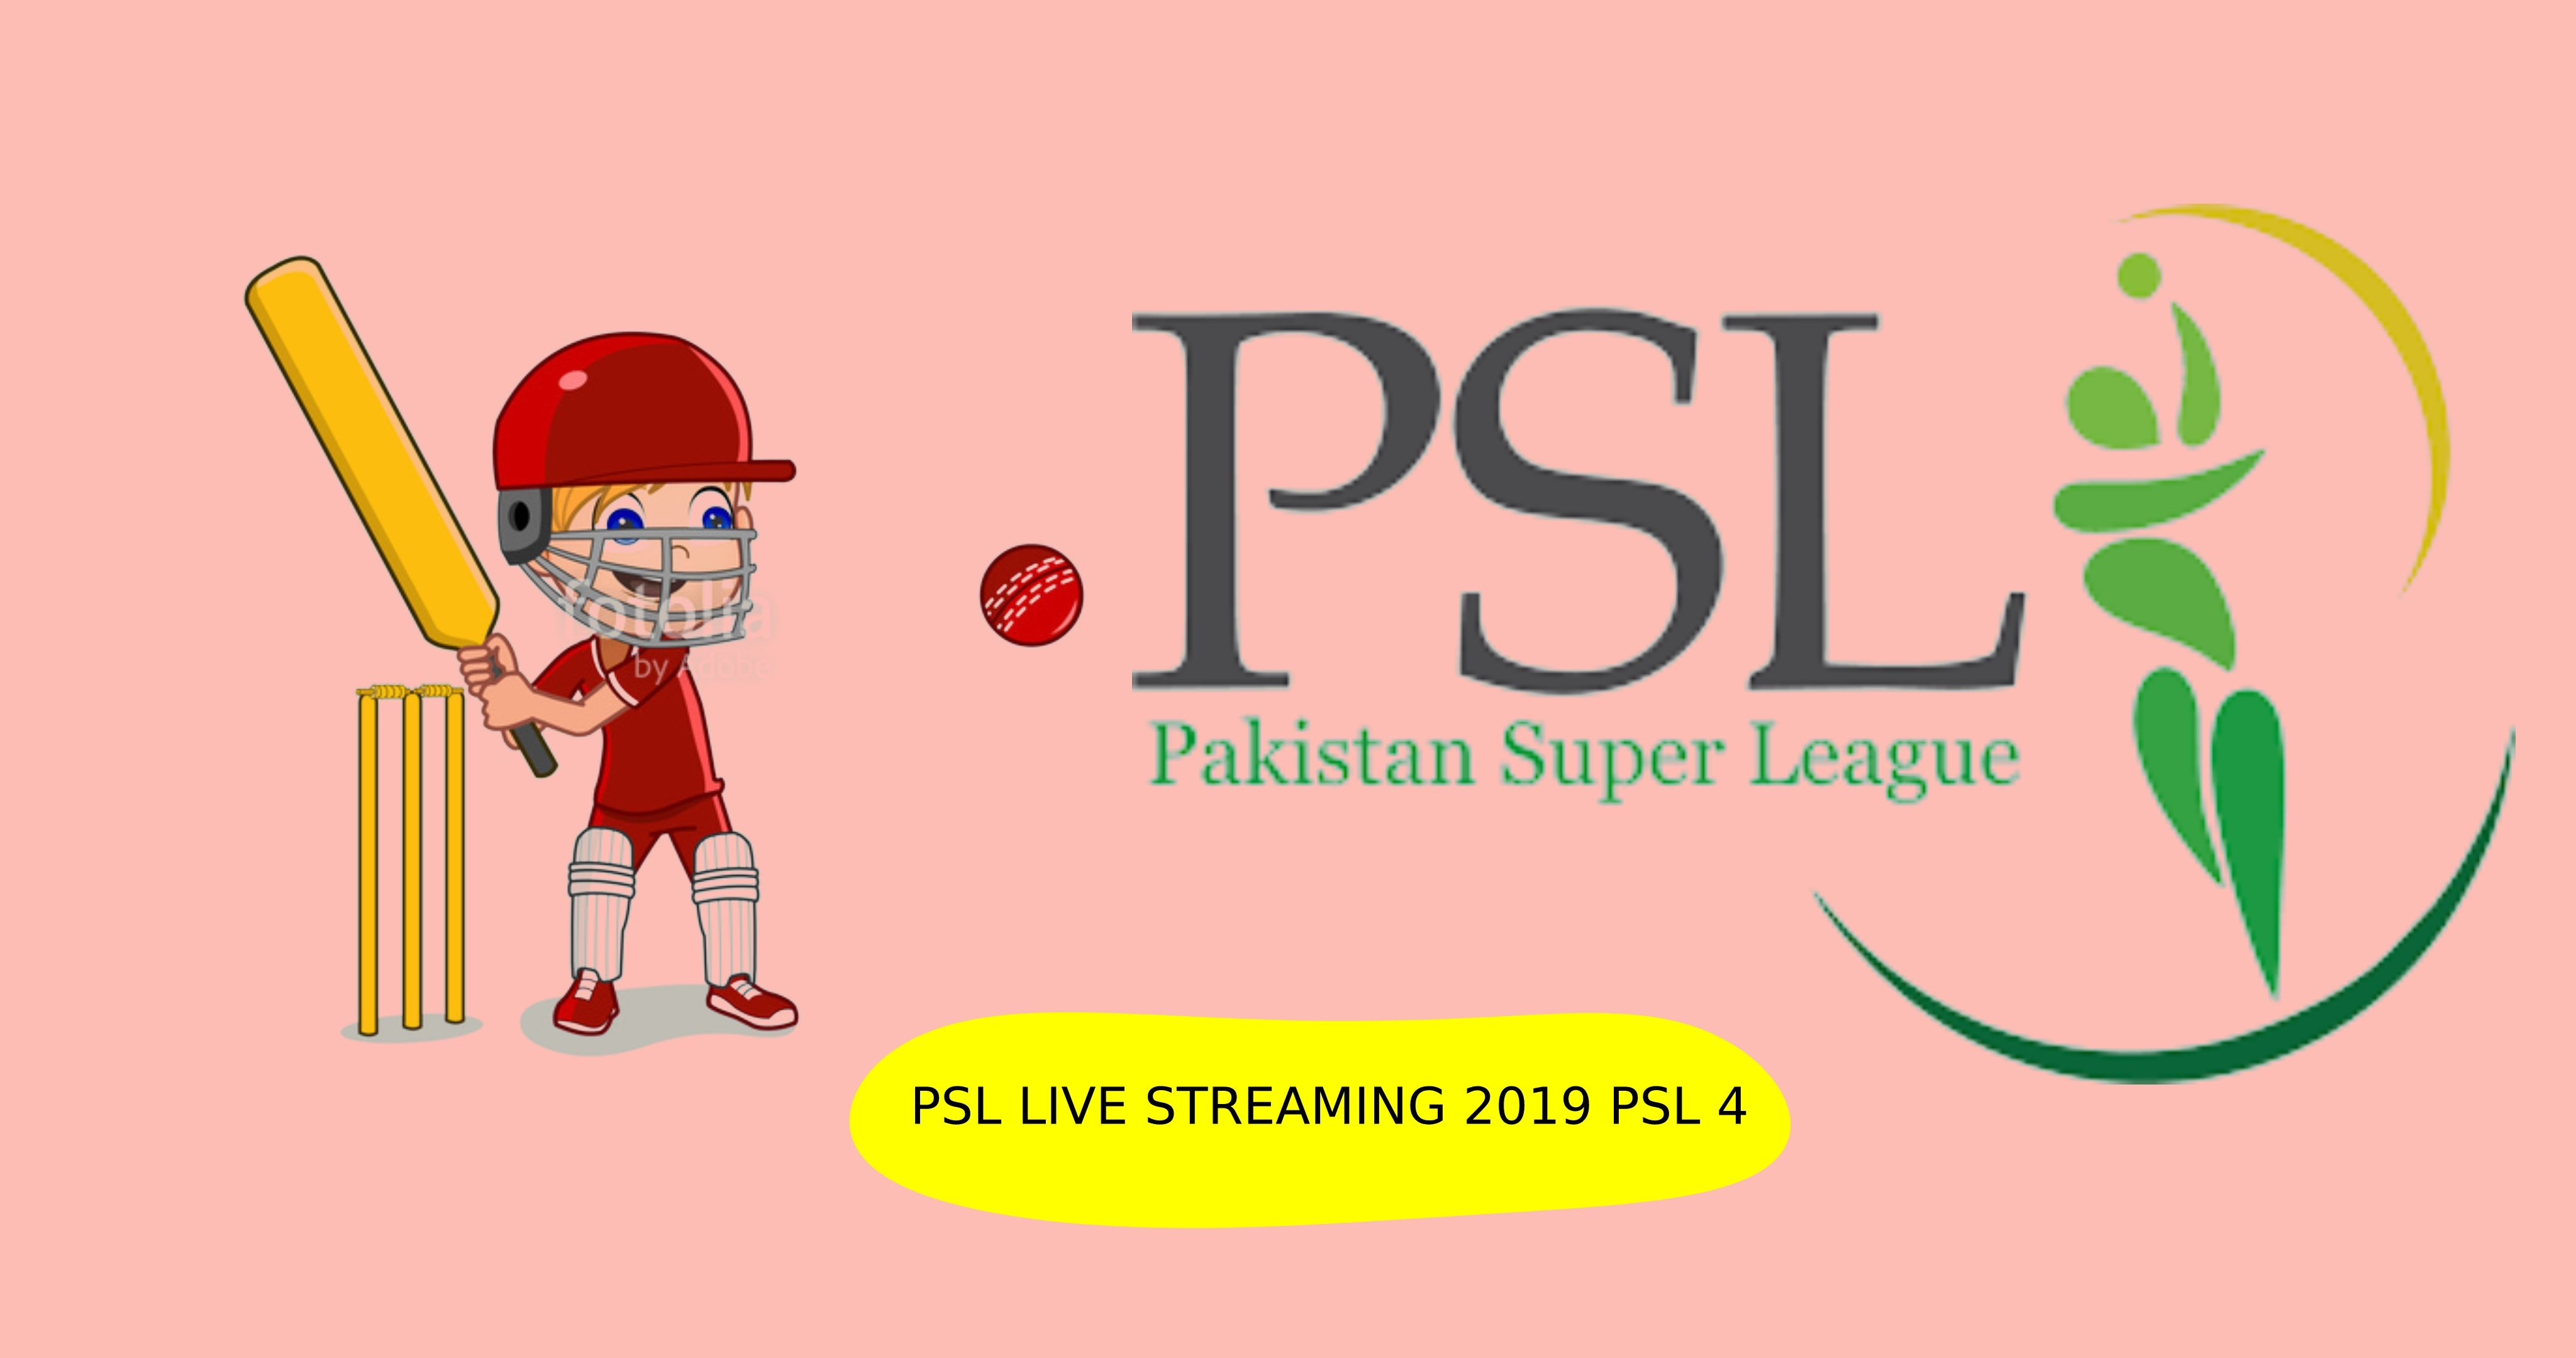 Here given link where all psl fans can watch all matches